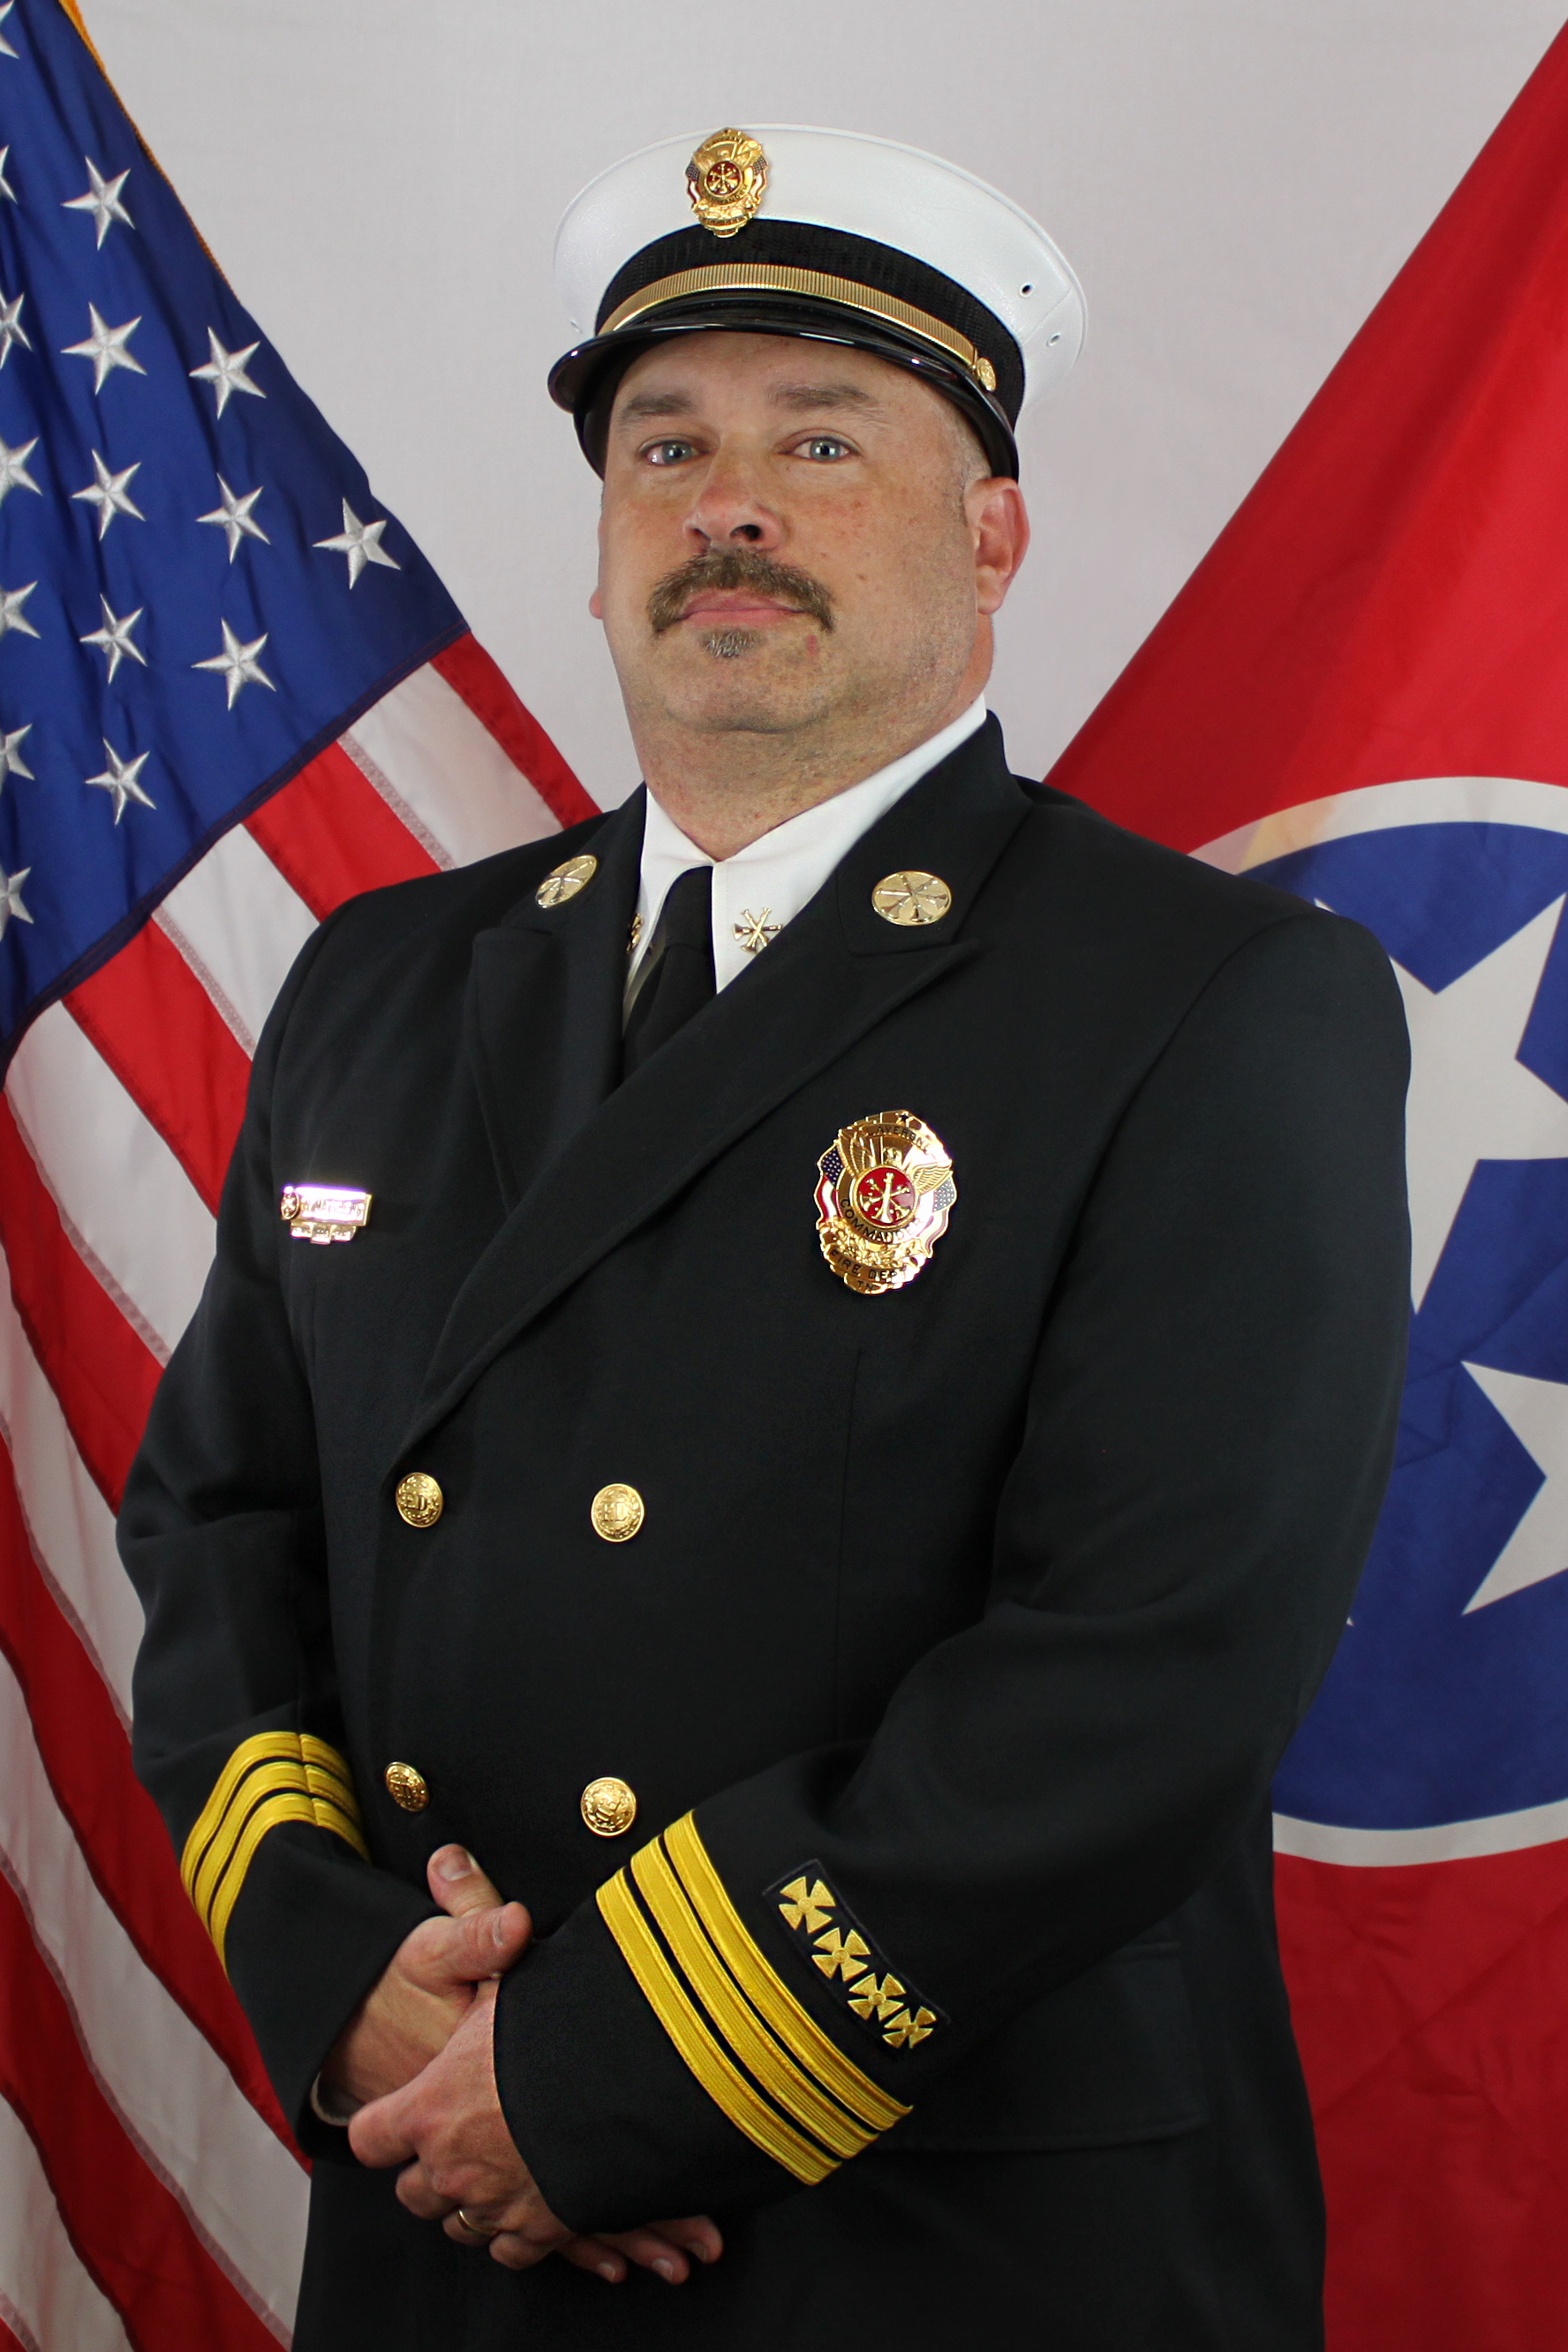 Fire Chief resigns to take new position with Rutherford County